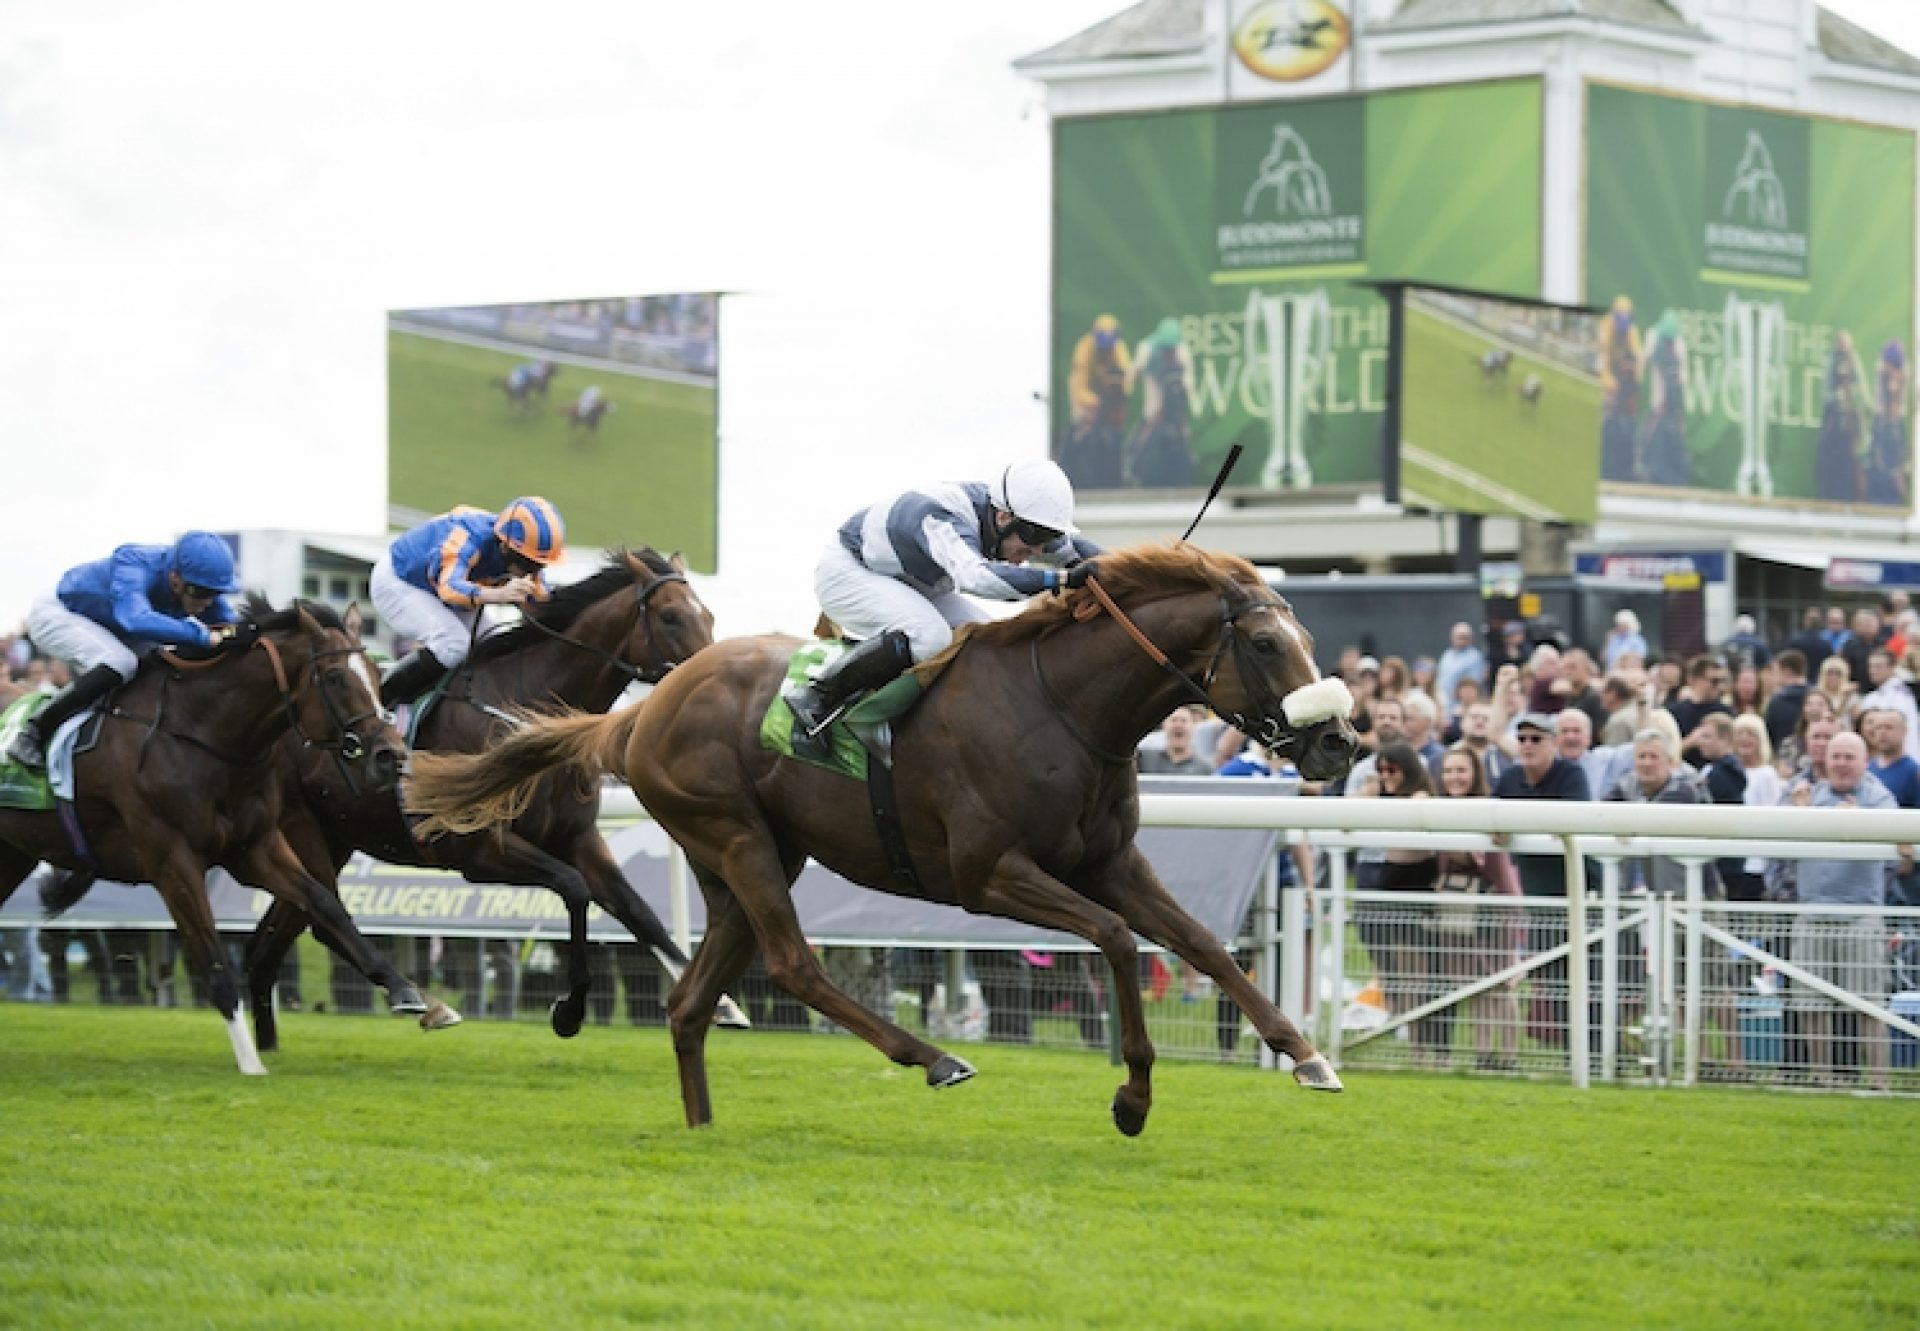 Ulysses (Galileo) winning the Juddmonte International (Gr.1) at York